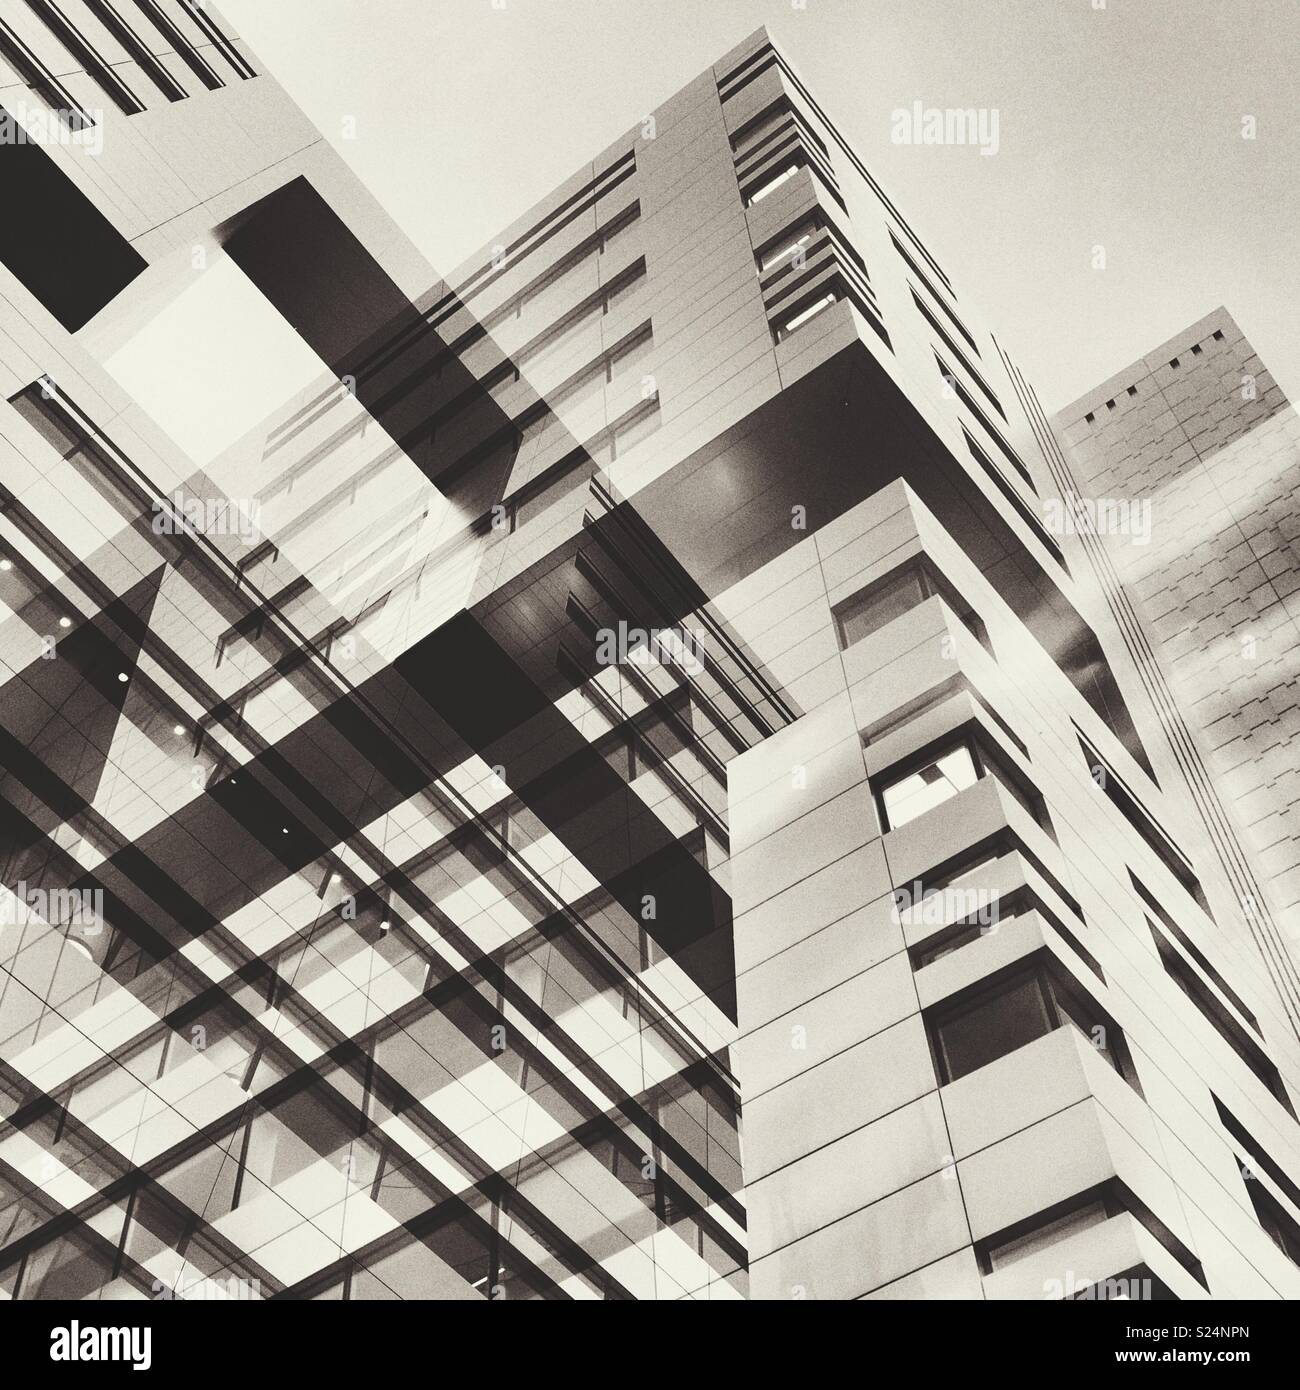 Abstract of city buildings - Stock Image